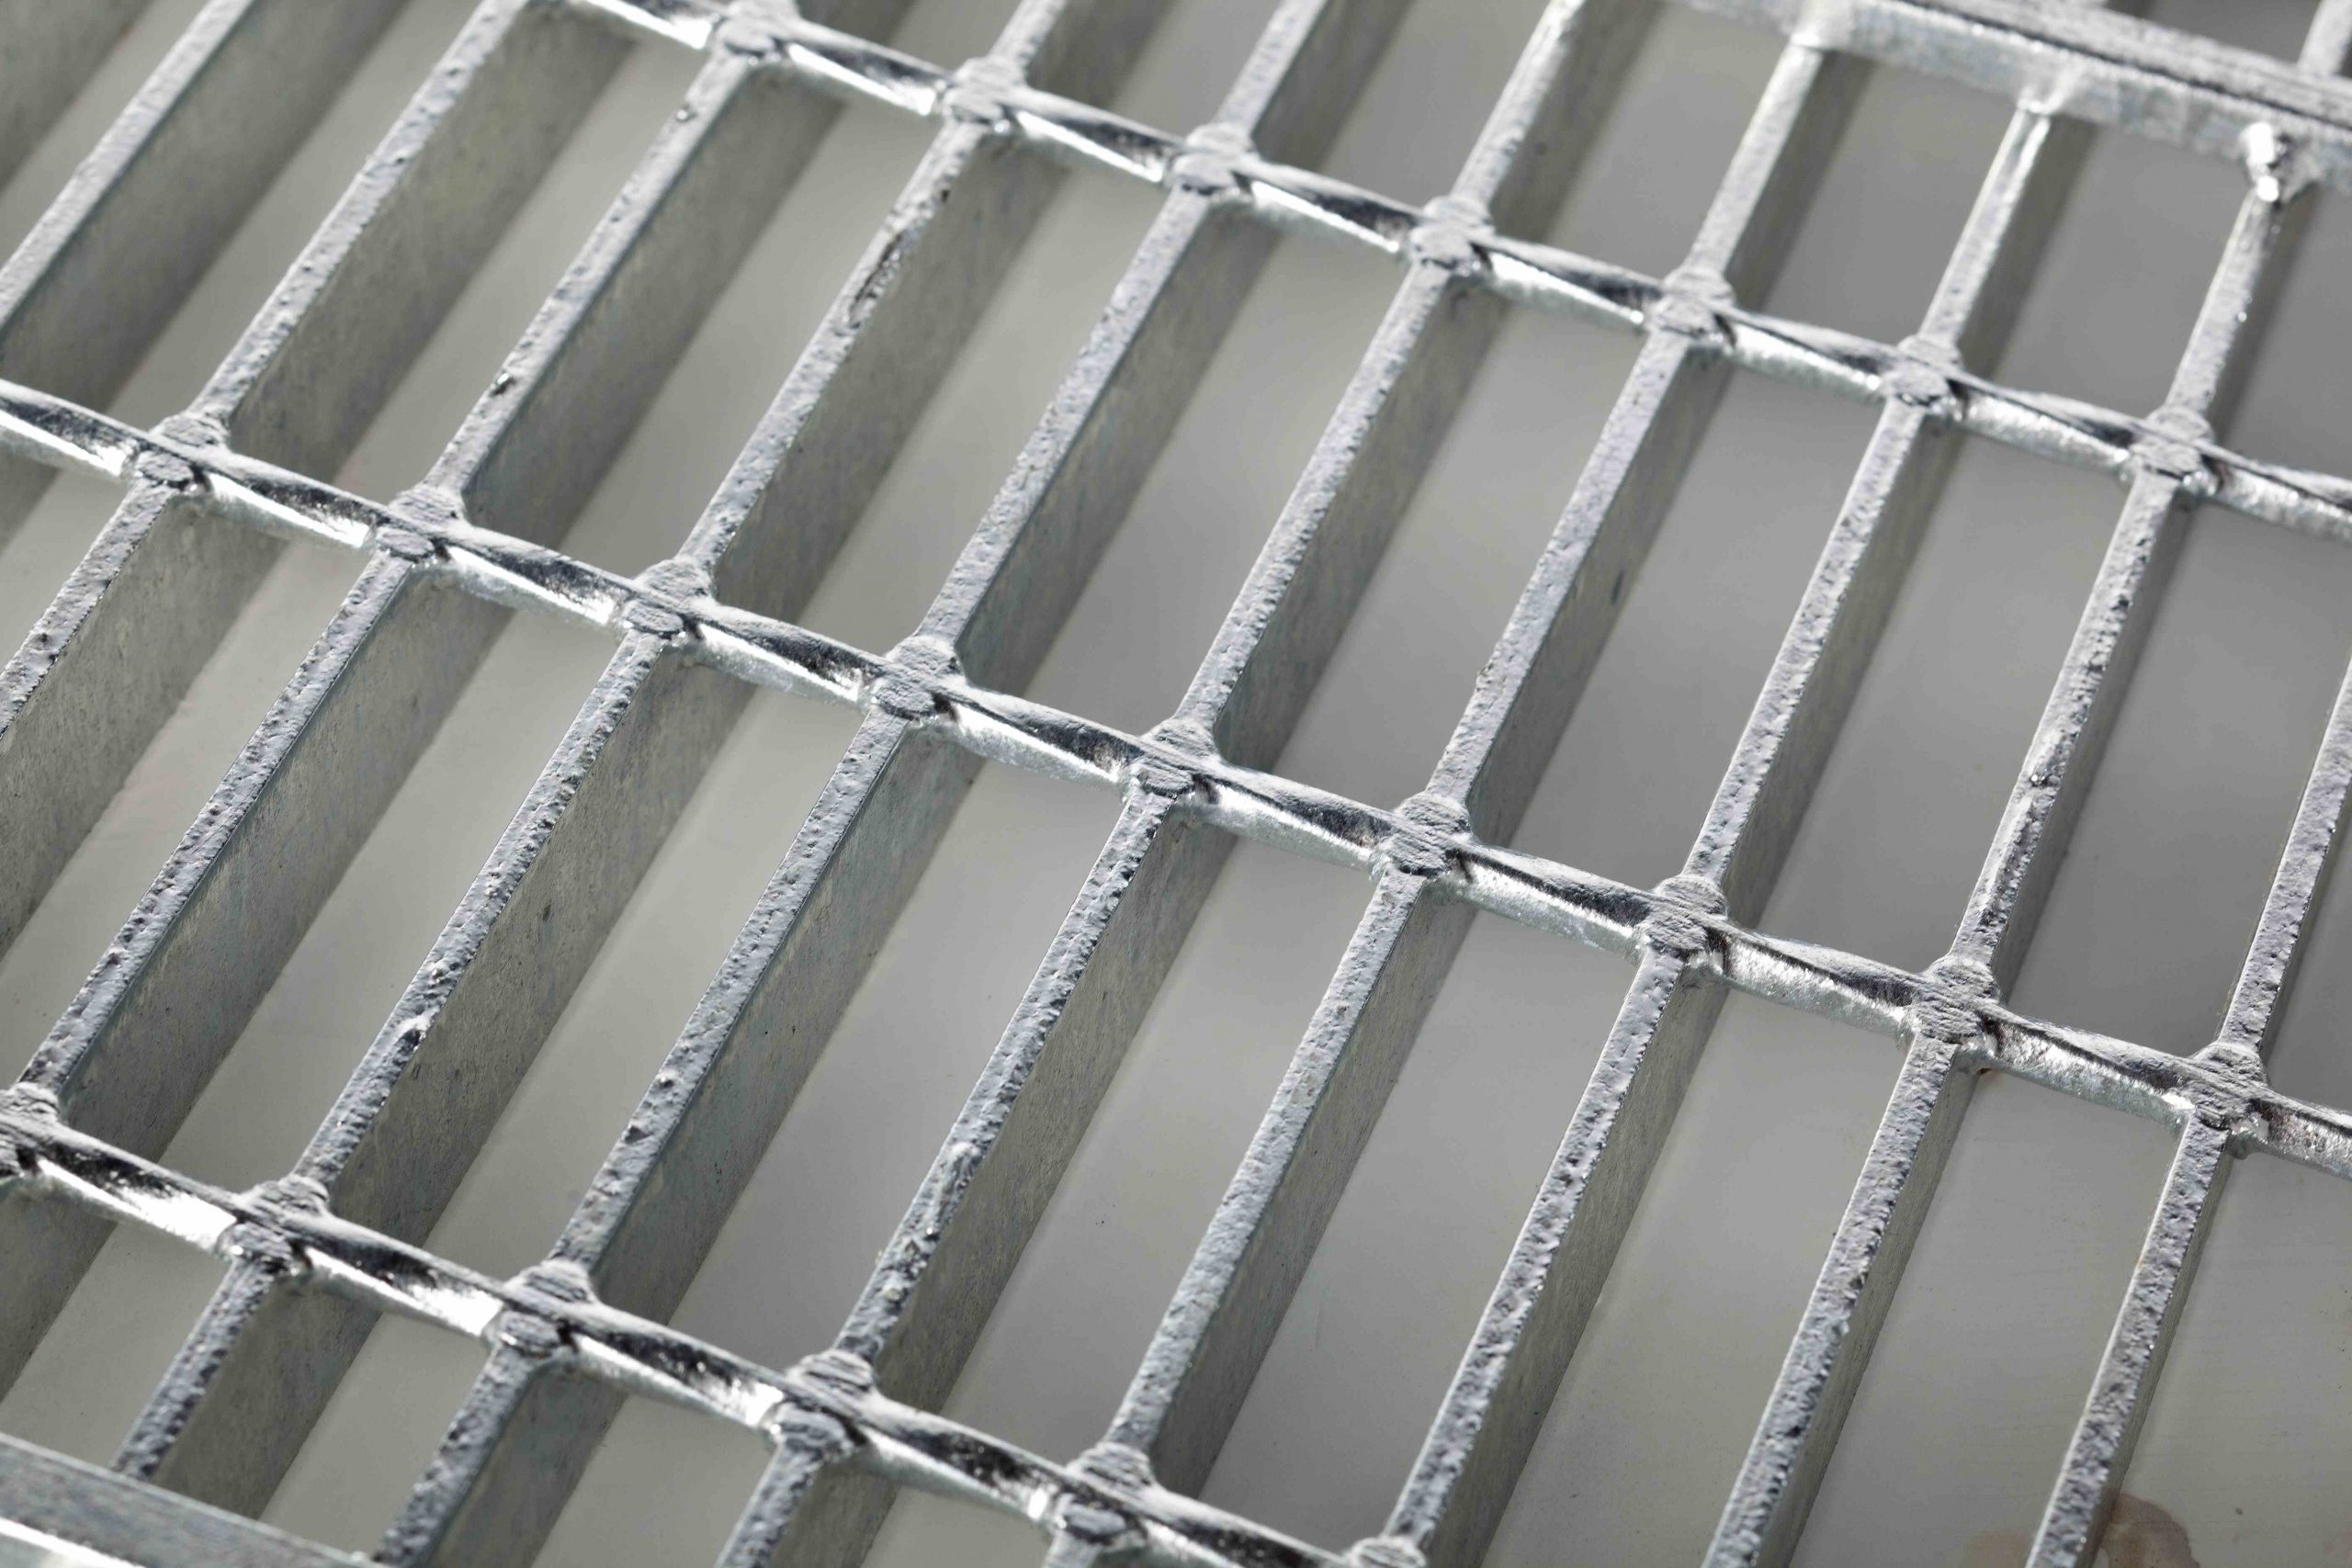 Plain-Gridforge-grating-for-web-scaled-1.jpg